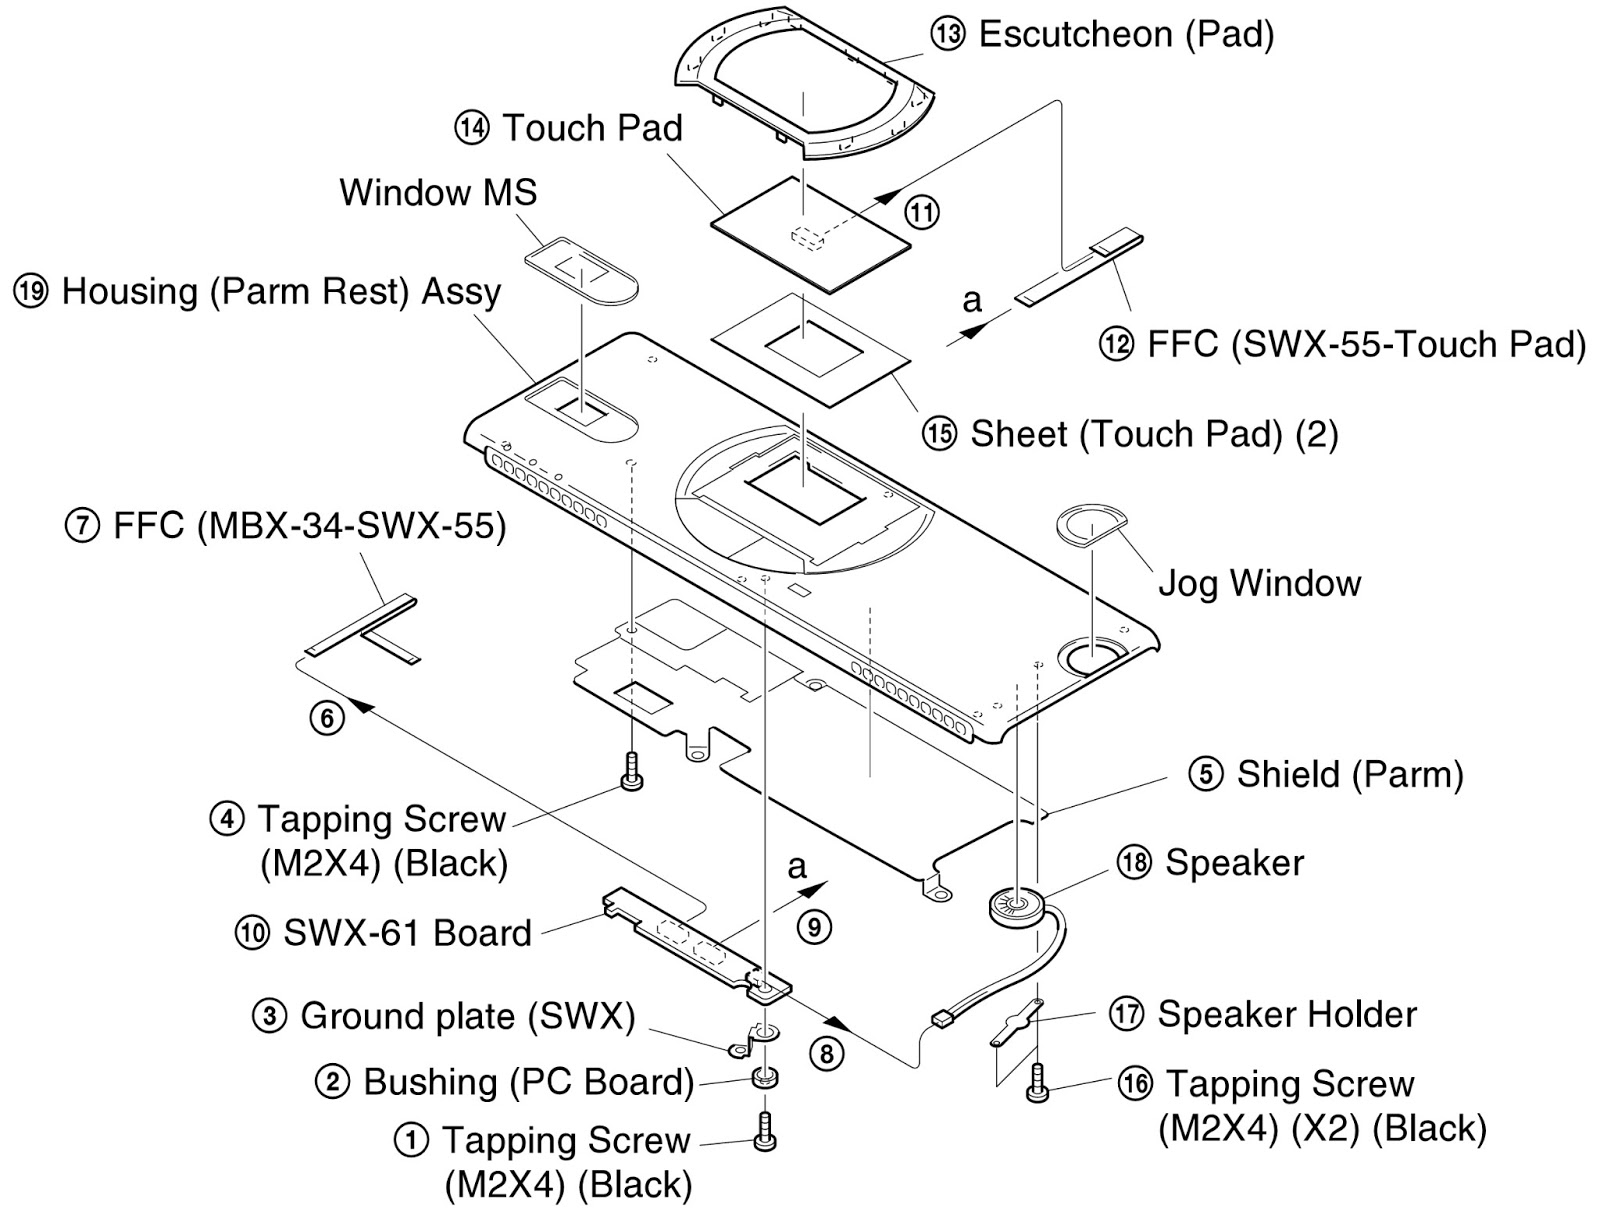 how to disassemble sony vaio pcg-sr27